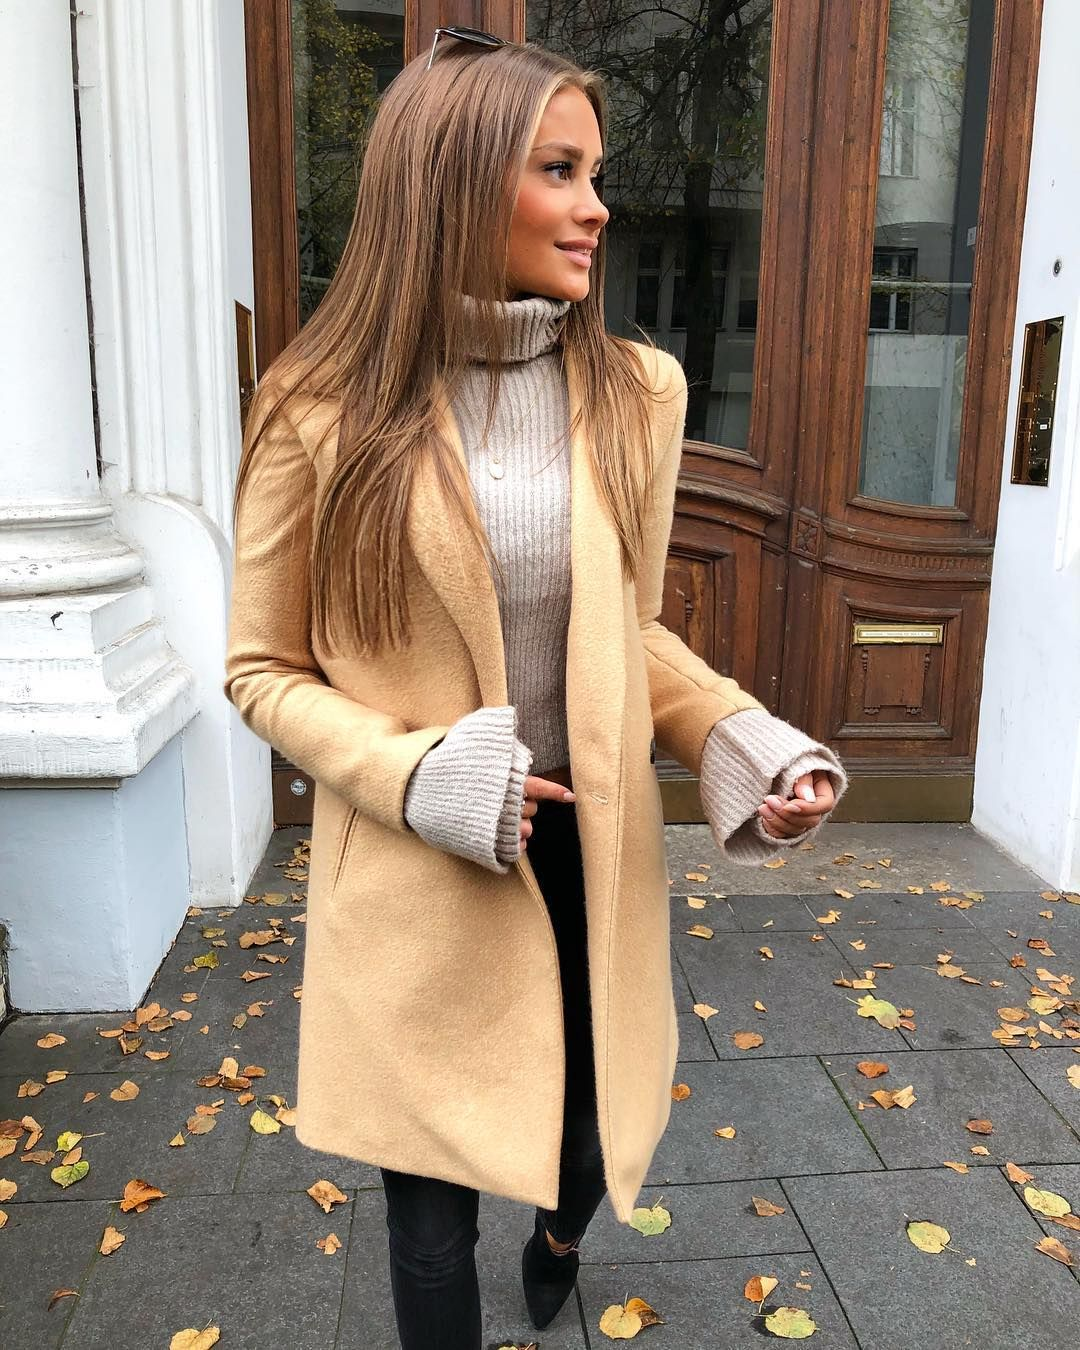 "Angelina Lilienne on Instagram: ""It looked like the world was covered in a cobbler crust of brown sugar and cinnamon - It's Autumn � #goodmorning #monday #streetstyle"""